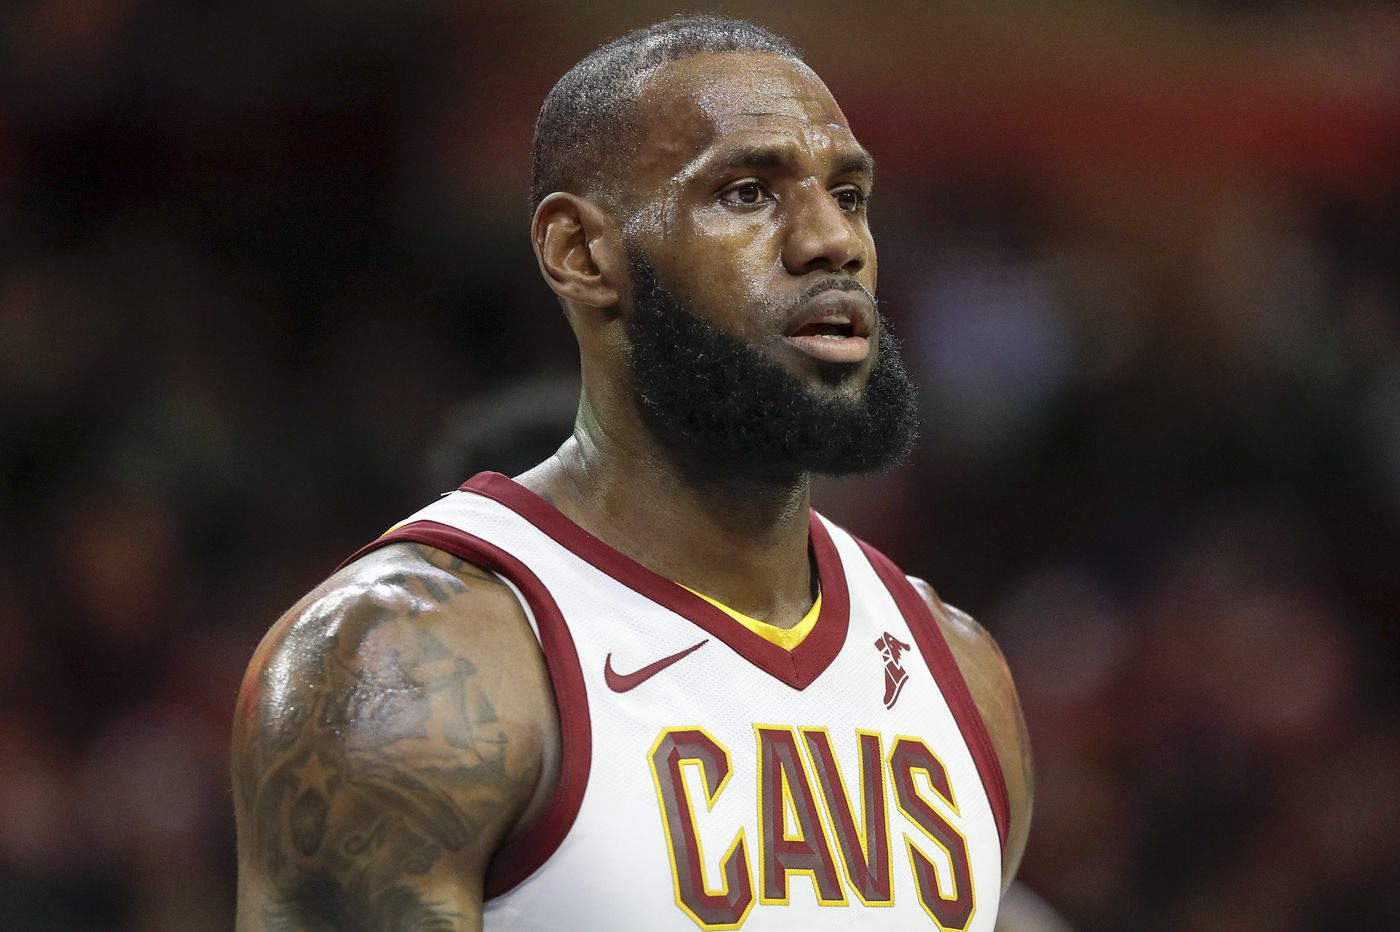 Sports headlines: Cavs continue talks with LeBron James, World Cup results, Clayton Kershaw shaky in surprise return